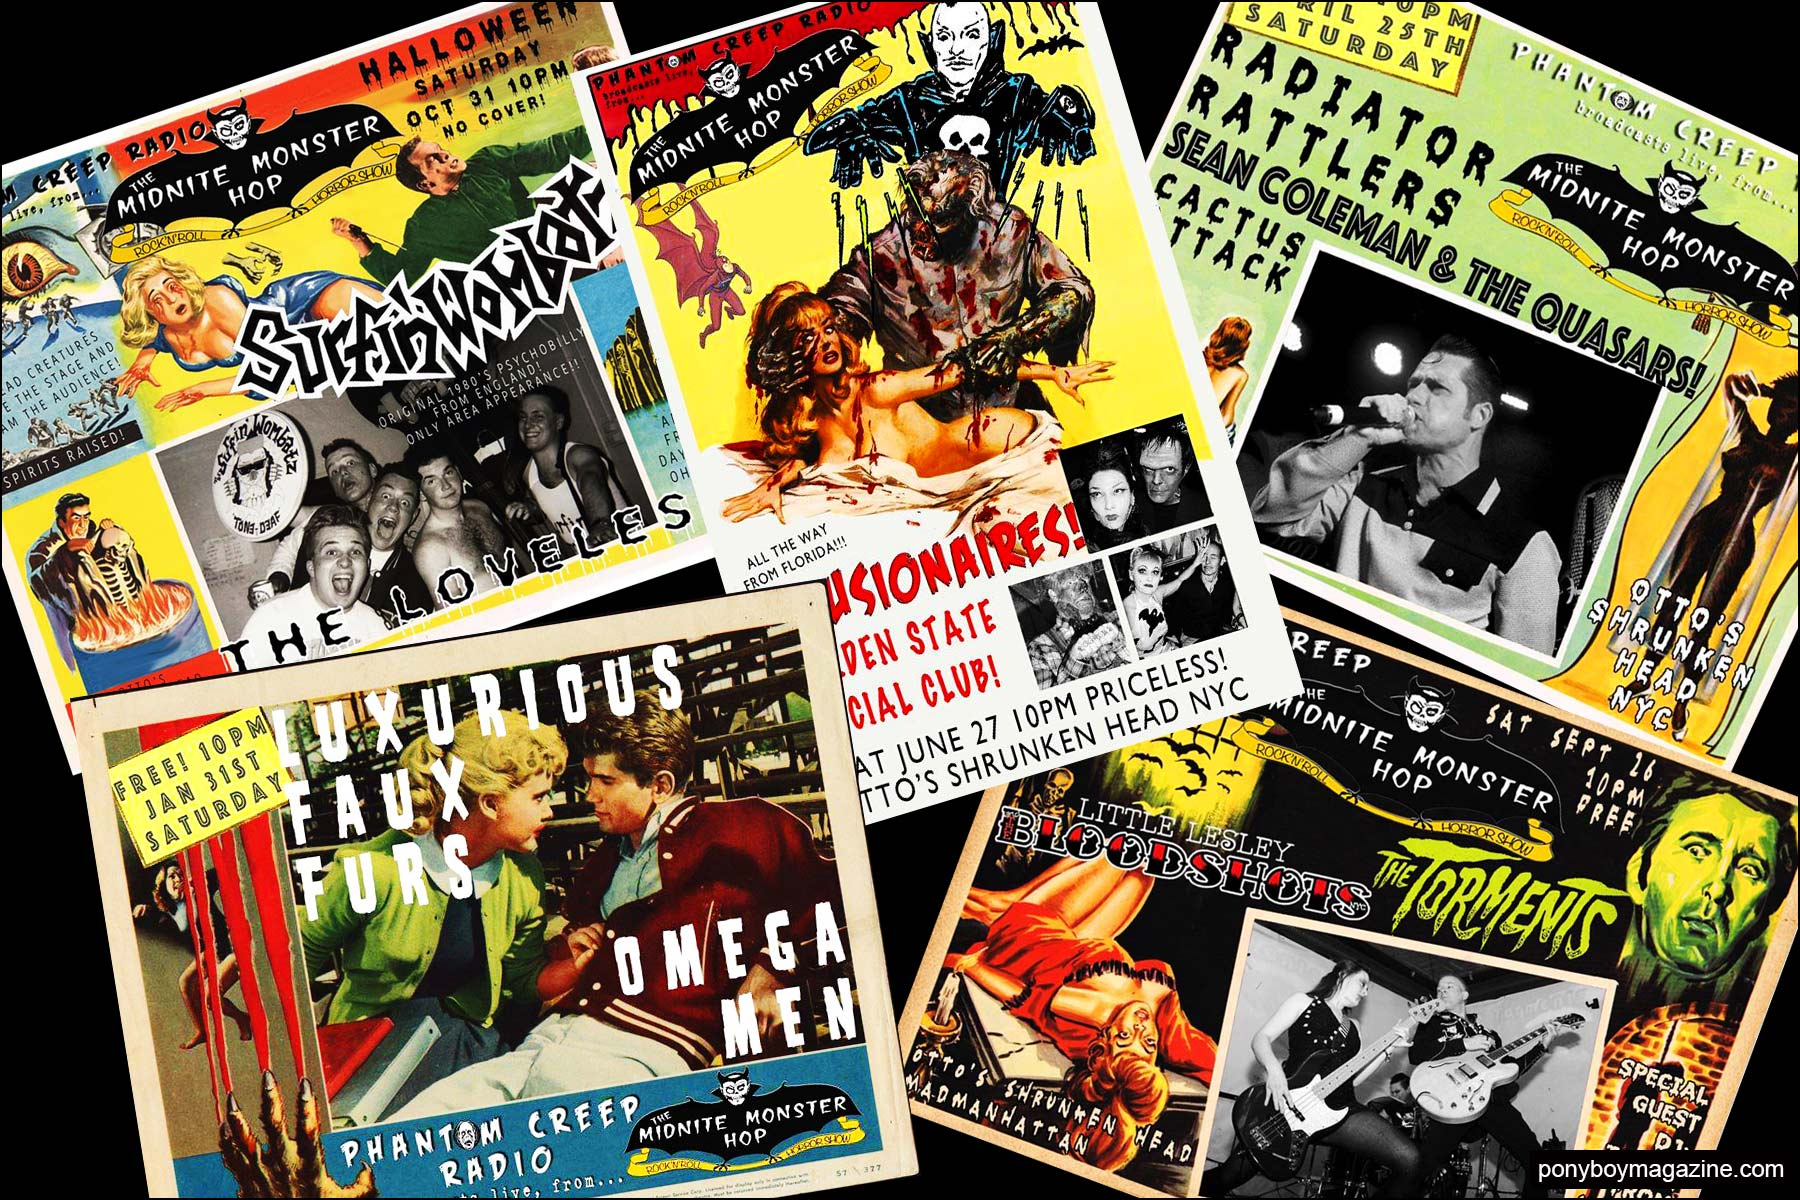 Assorted colorful flyers from the Midnite Monster Hop. Ponyboy magazine NY.